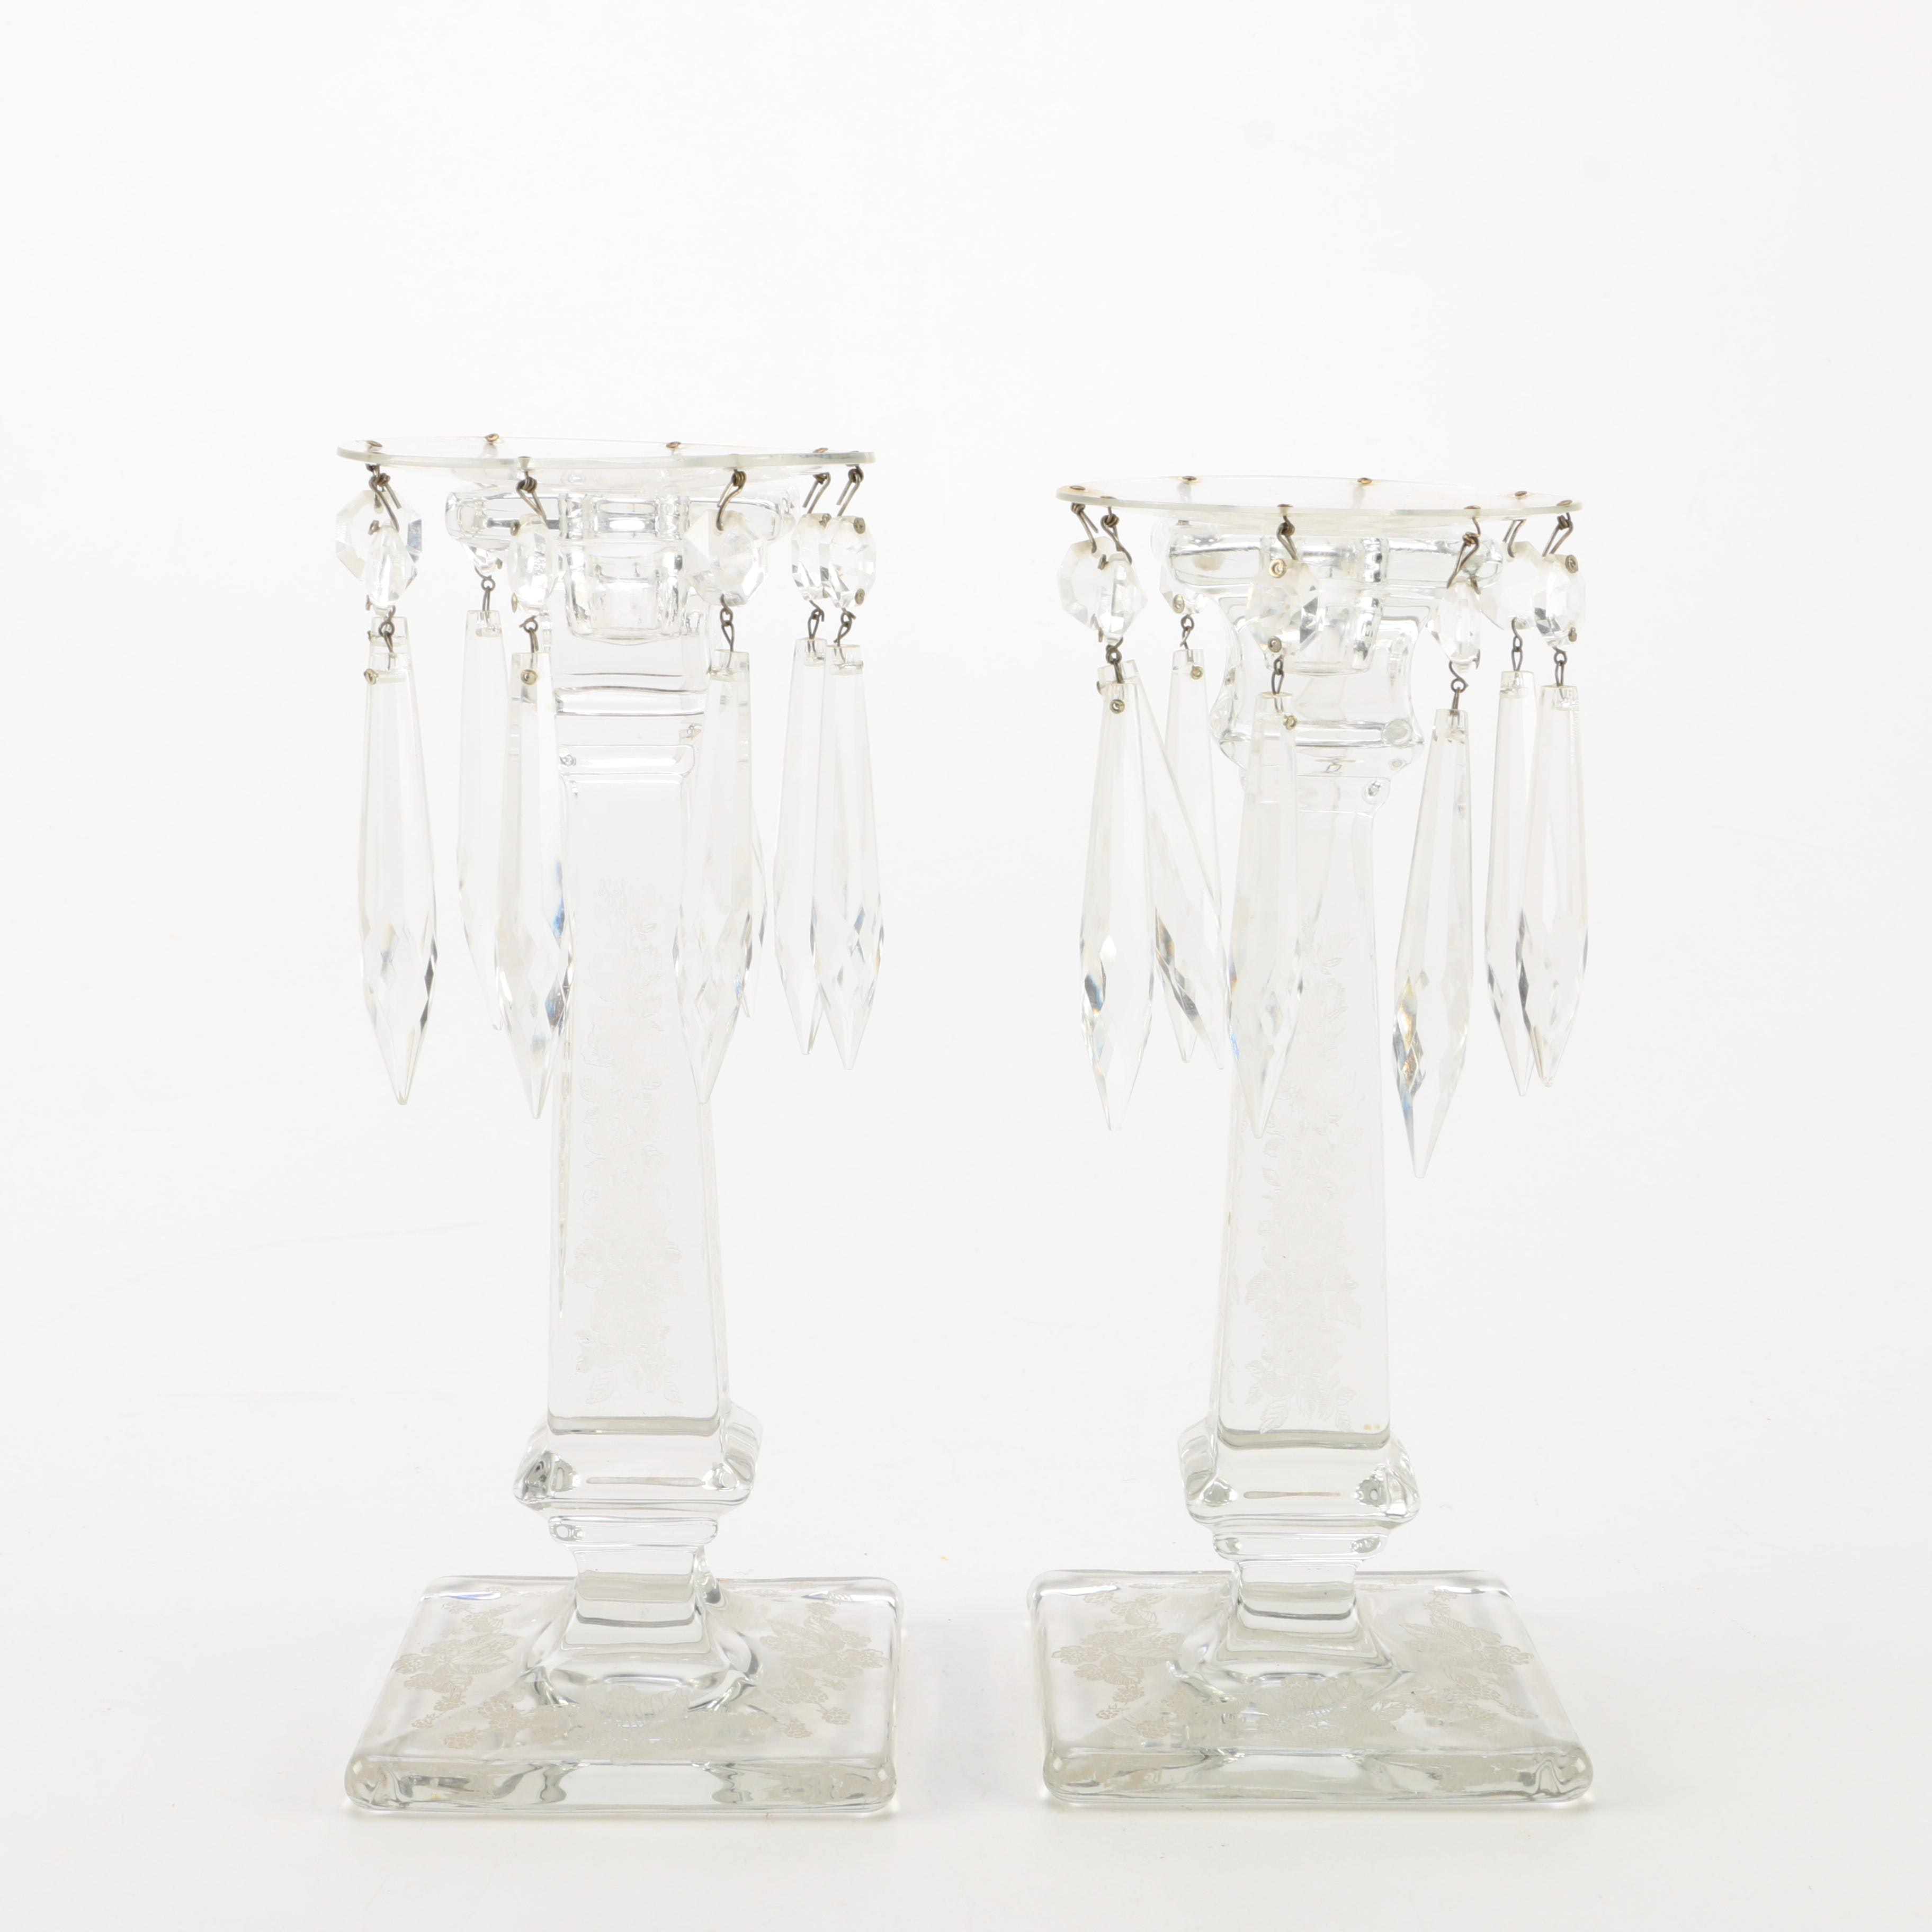 Pair of Crystal Candle Holders with Prisms